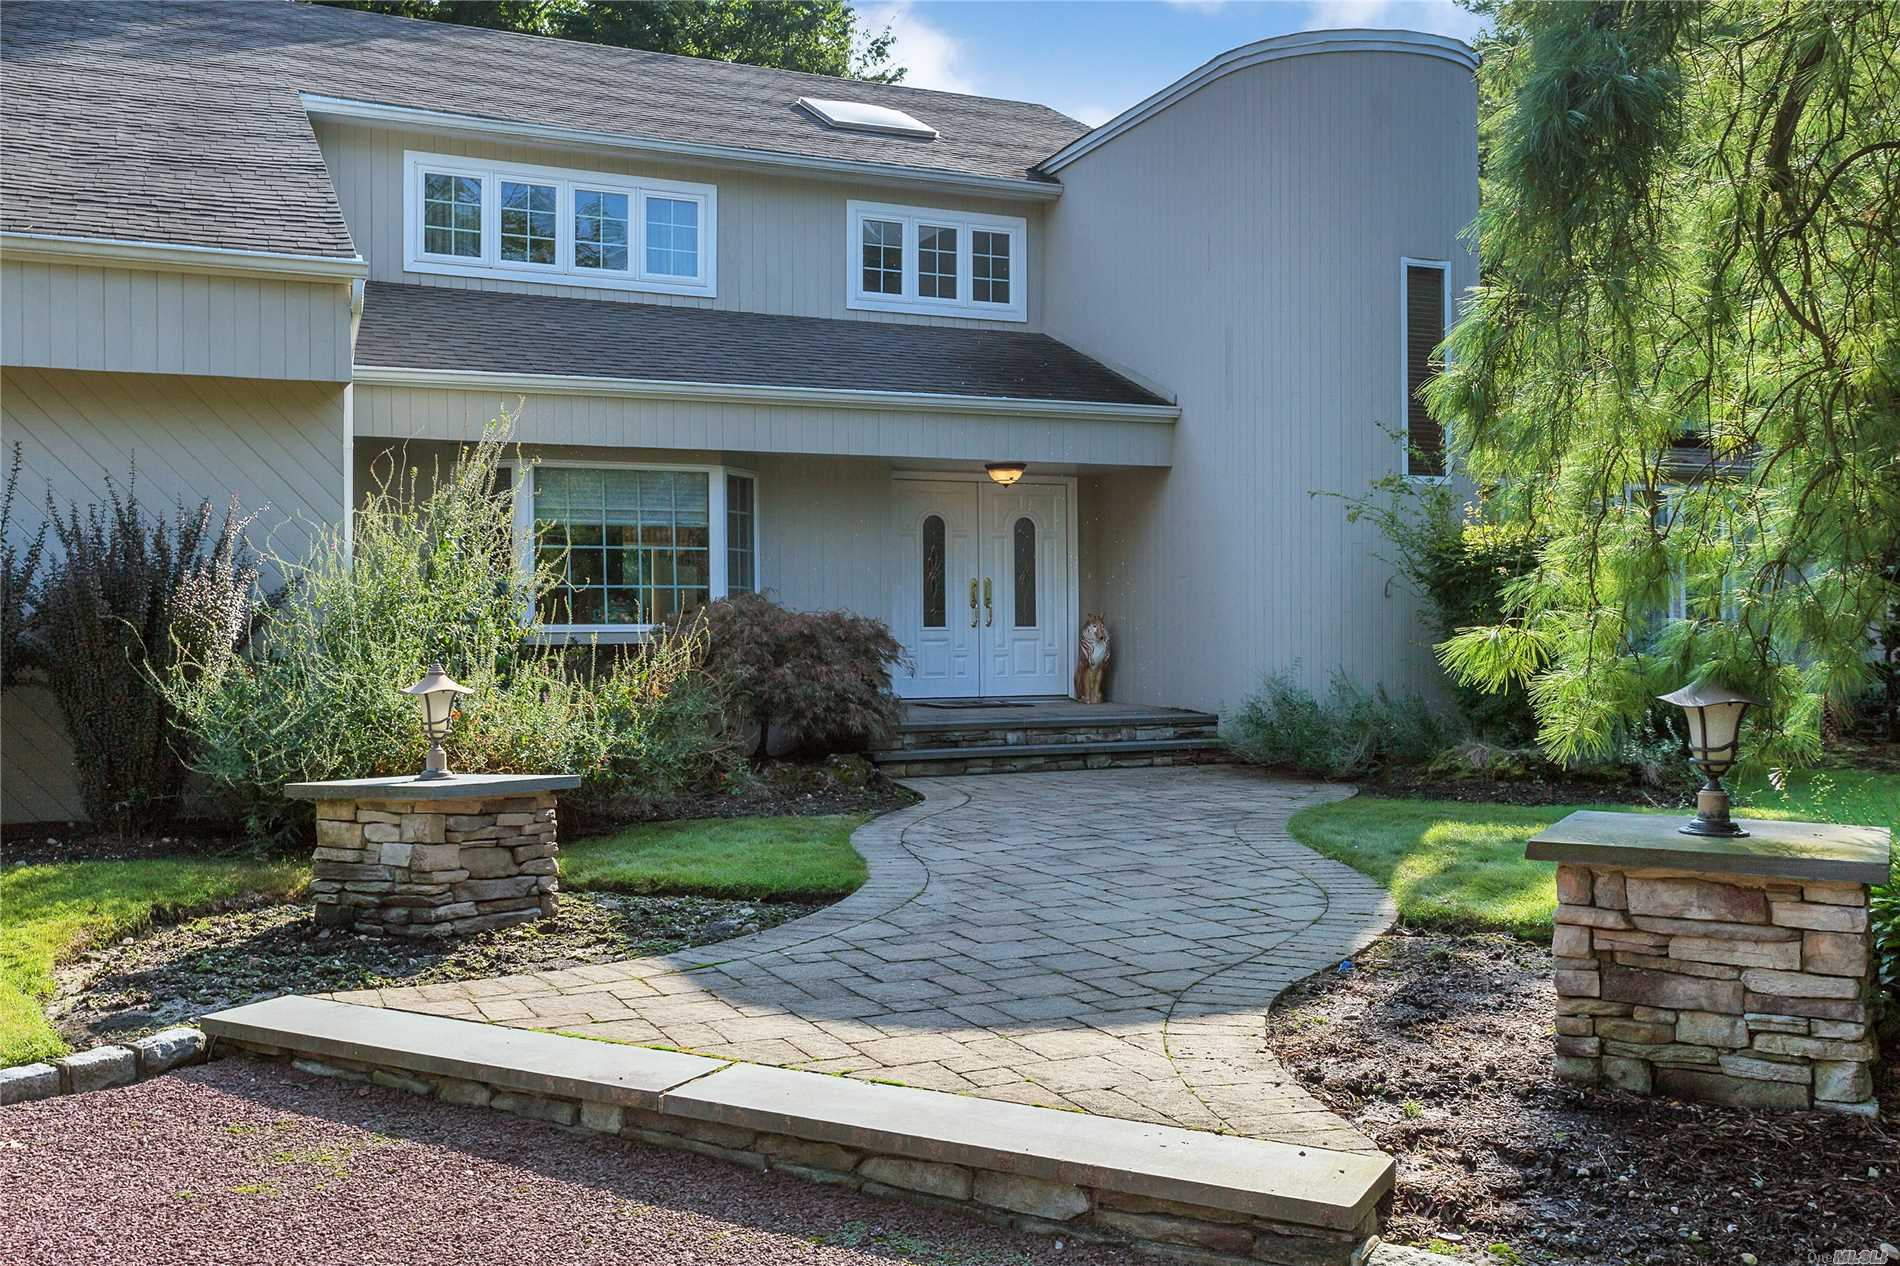 Woodbury. Perfectly Situated On A Cul-De-Sac In The Gated Hunters Run Community. This 5-Bedroom, 3.5 Bathroom Home Is Sure To Please With Lots Of Natural Light, Open Floor Plan, 2nd Fl Landing/Balcony Overlooking Ef, Chefs Kitchen W/Brkfst Area, Large Family Room, Incredible Office/Br W/Sliders To Back Deck, Beautiful & Updated Bathrooms, & Full Basement. Country Club Backyard With Expansive Deck Great For Entertaining, Waterfall, Koi Pond, Inground Pool & Spa & Much More.